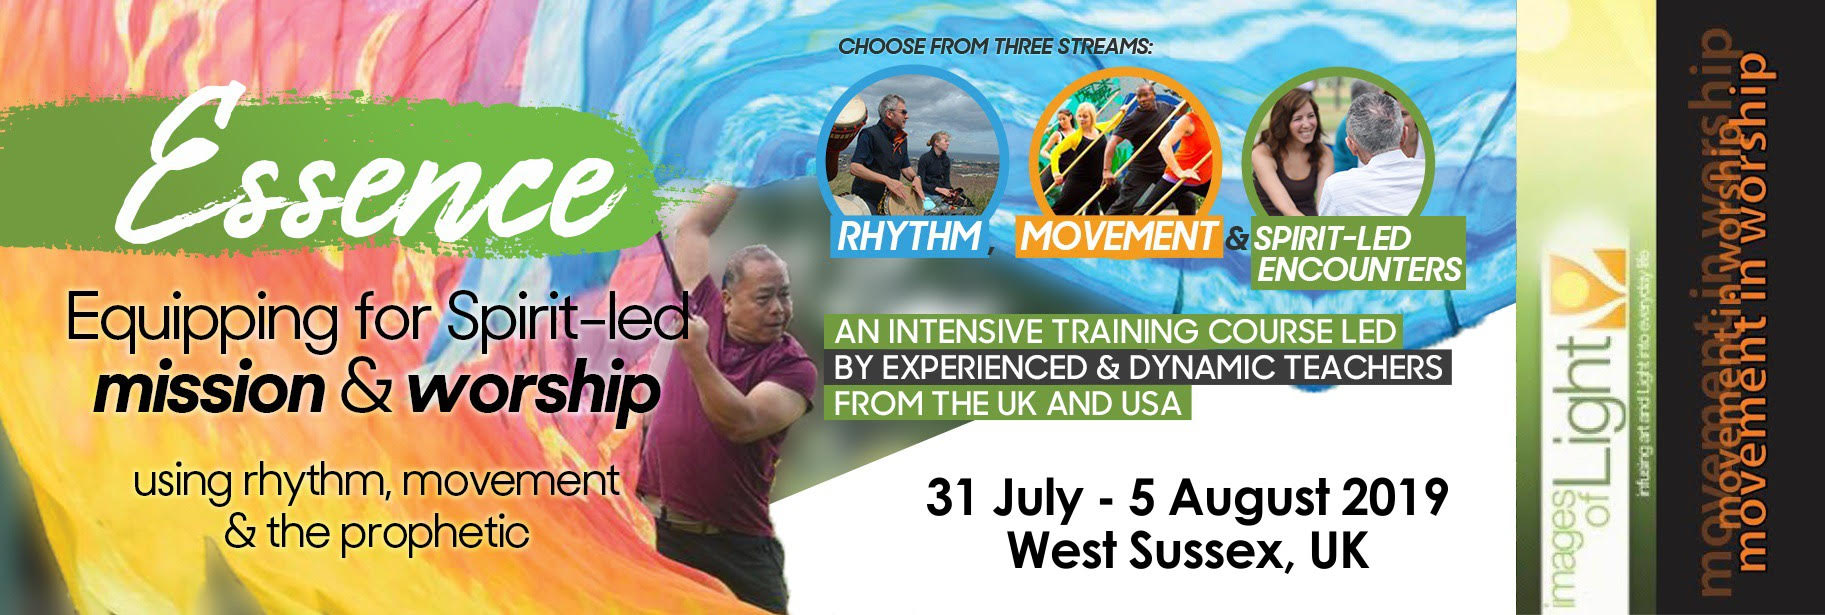 Essence Banner advert West Sussex 31 July-5 August 2019 - Equipping for spirit-led mission and worship using rhythm, movement and the prophetic.